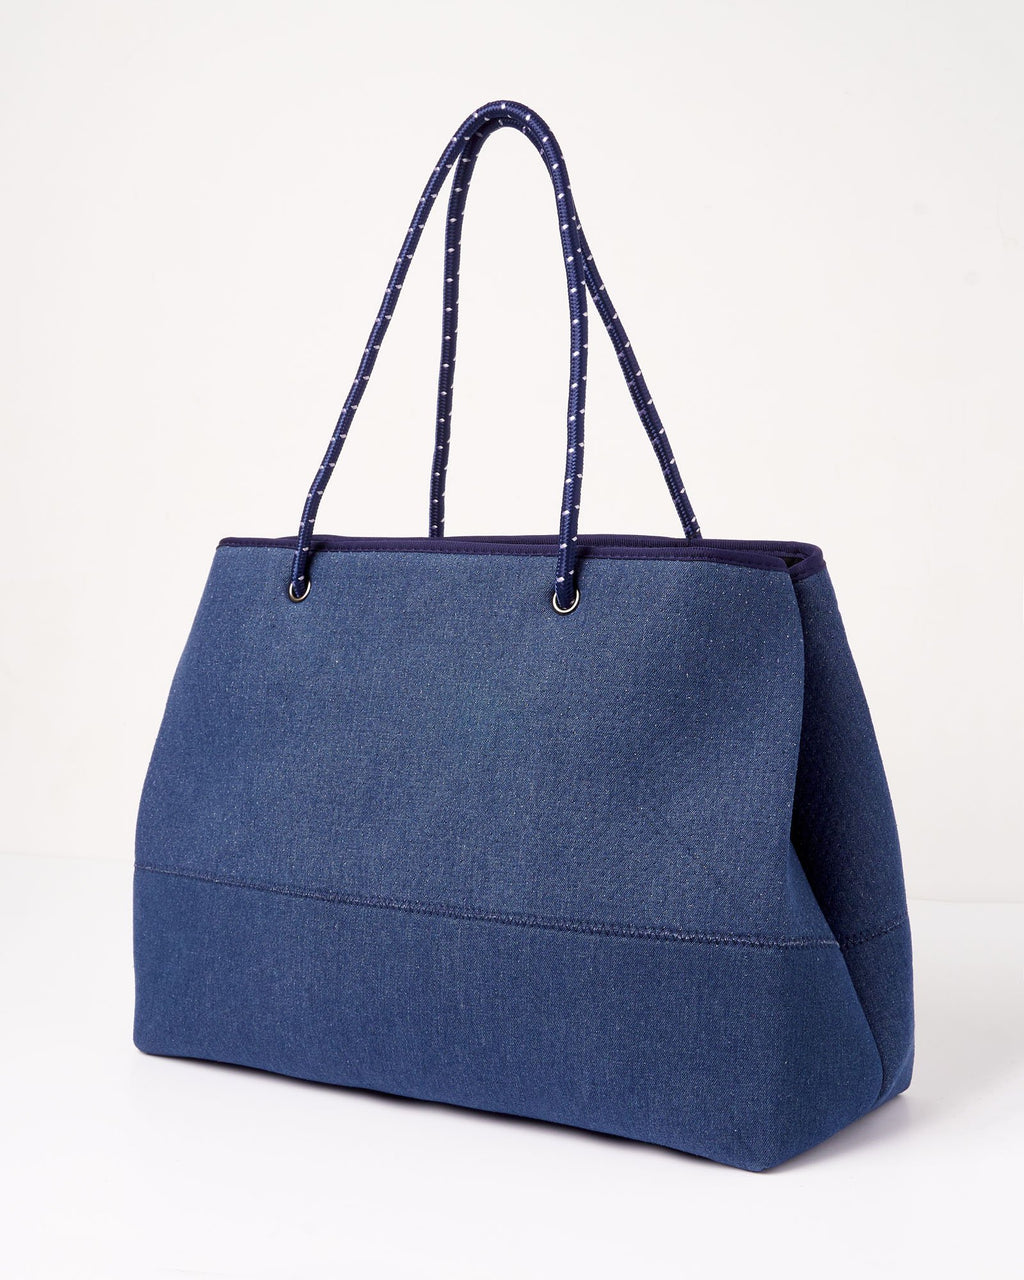 Miz Casa & Co Ivy Neoprene Tote Bag Blue Denim-Miz Casa & Co-Nomads Cove